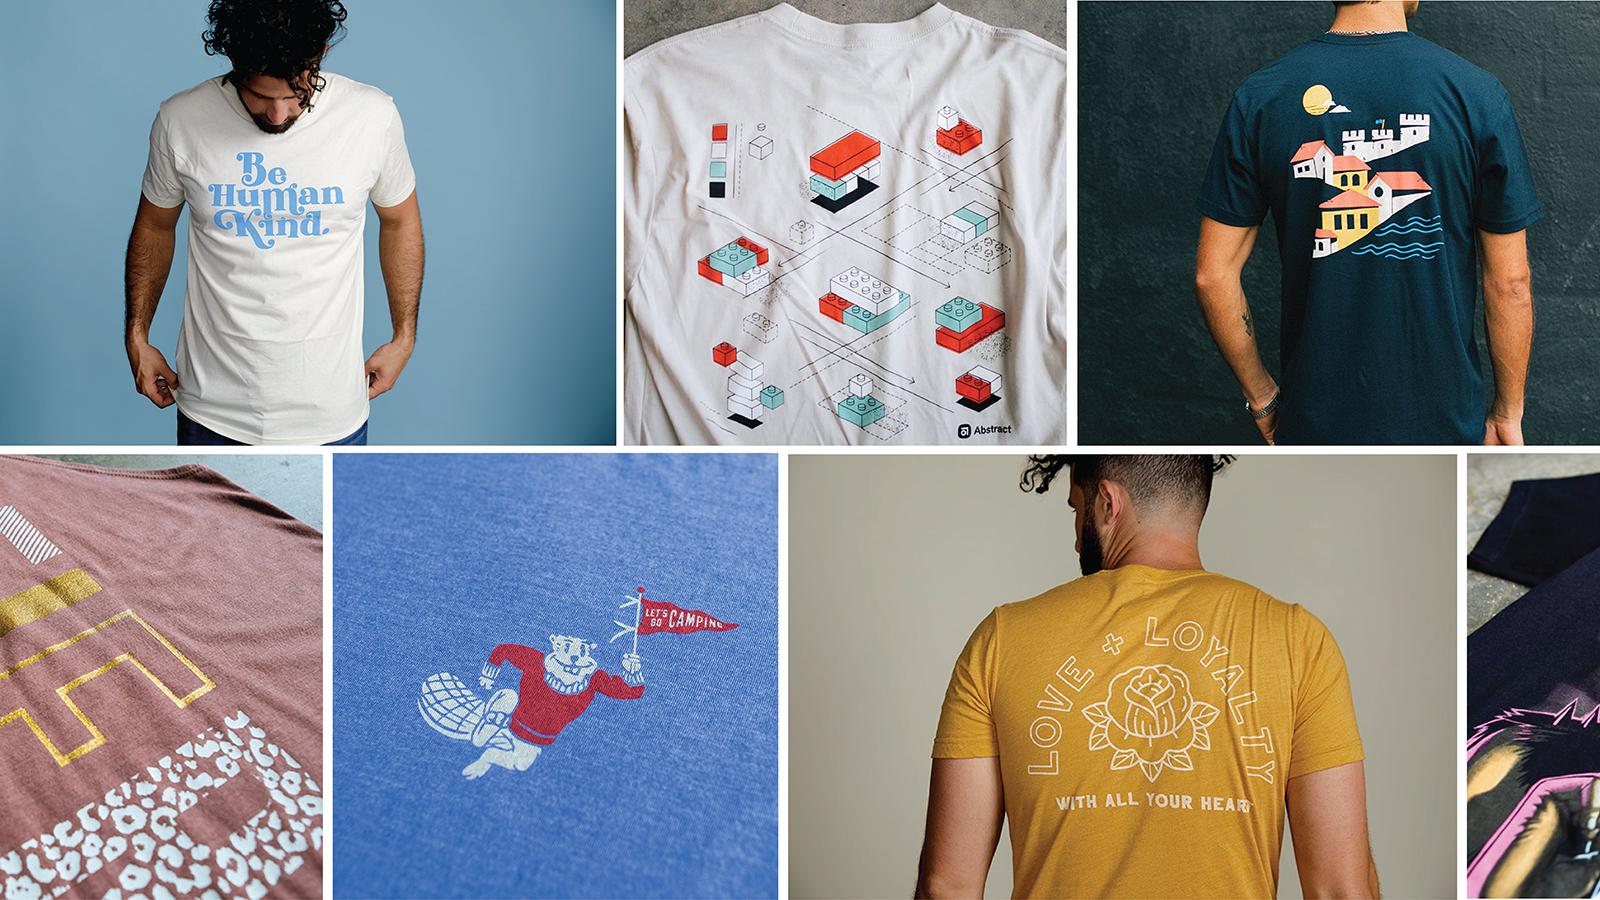 The 19 Best T-Shirt Designs from 2019